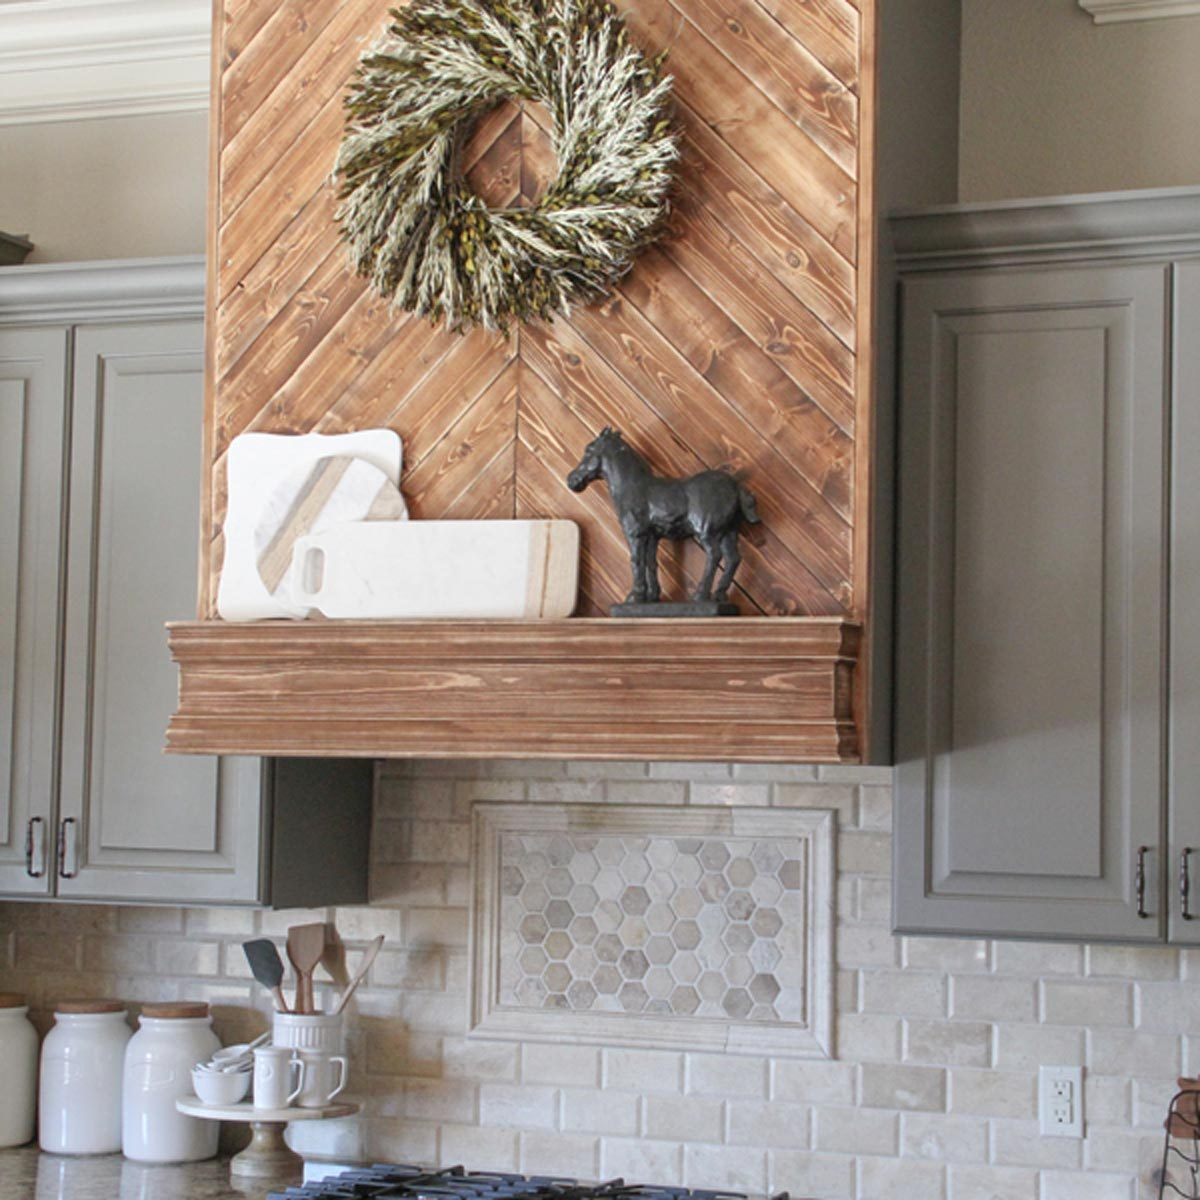 Creative Ways To Disguise A Range Hood Vent The Family